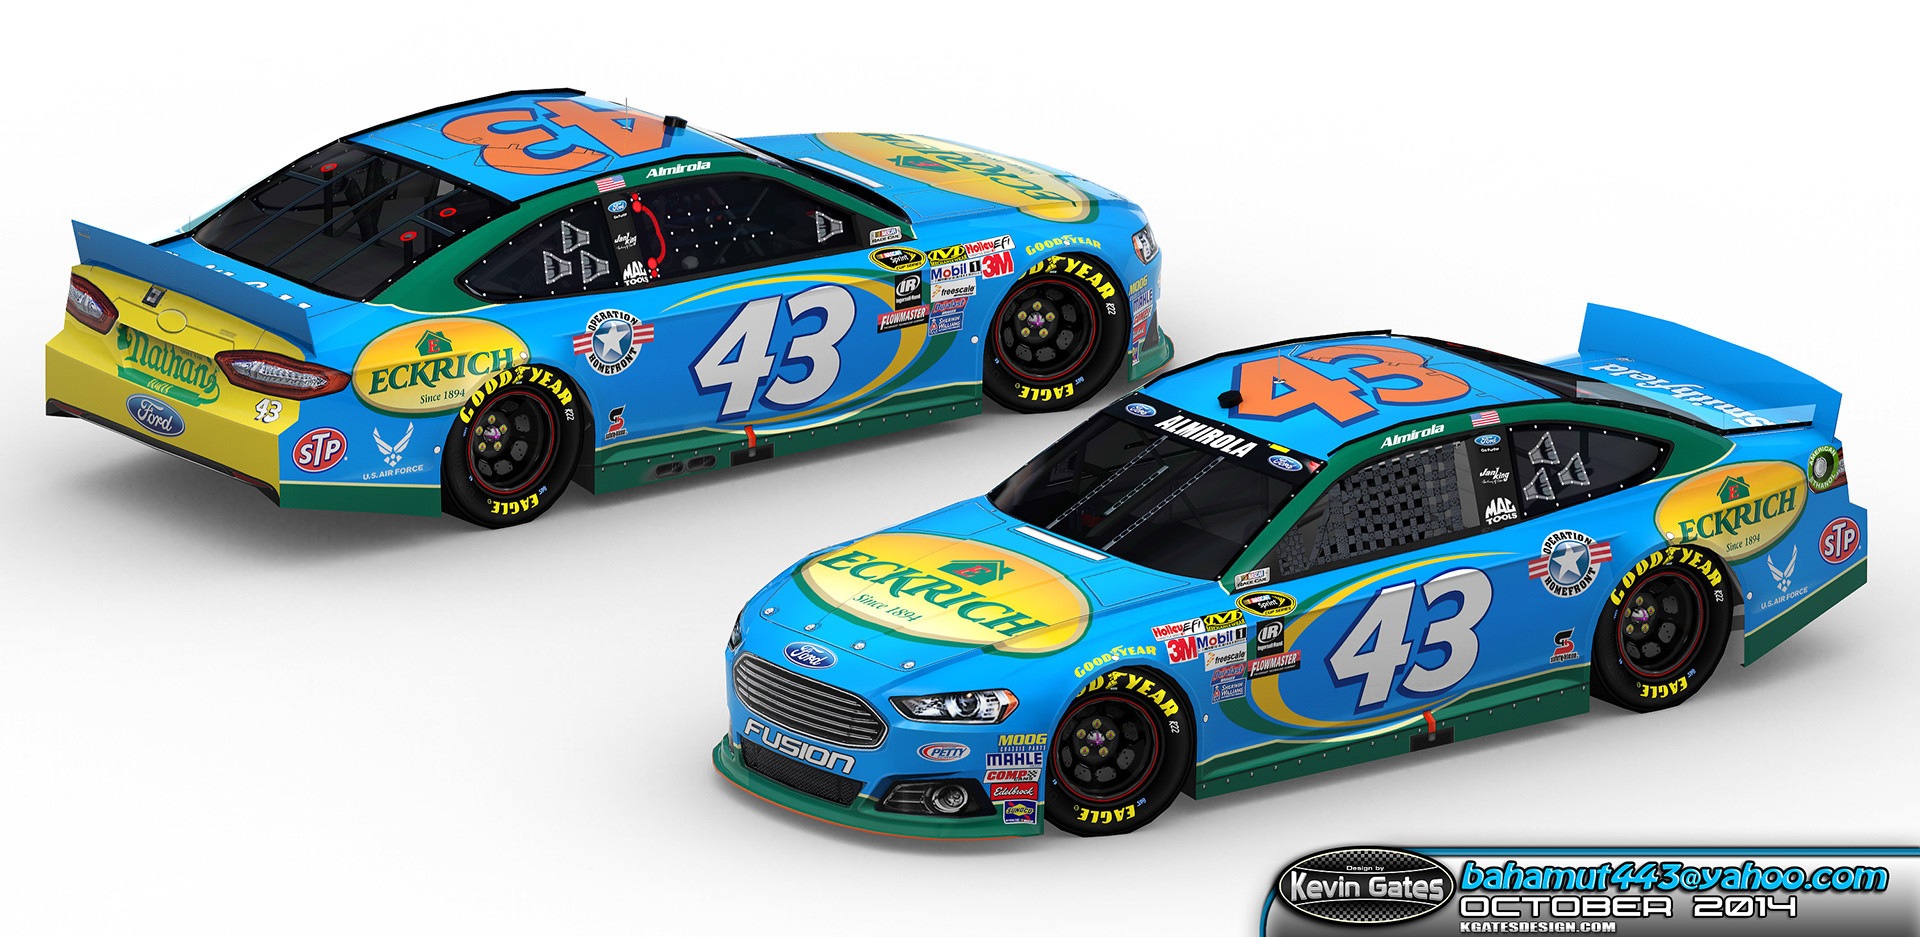 Original Autodesk 3DS Max render of the finalized 2015 #43 Eckrich Ford Fusion driven by NASCAR Sprint Cup Series driver Aric Almirola of Richard Petty Motorsports